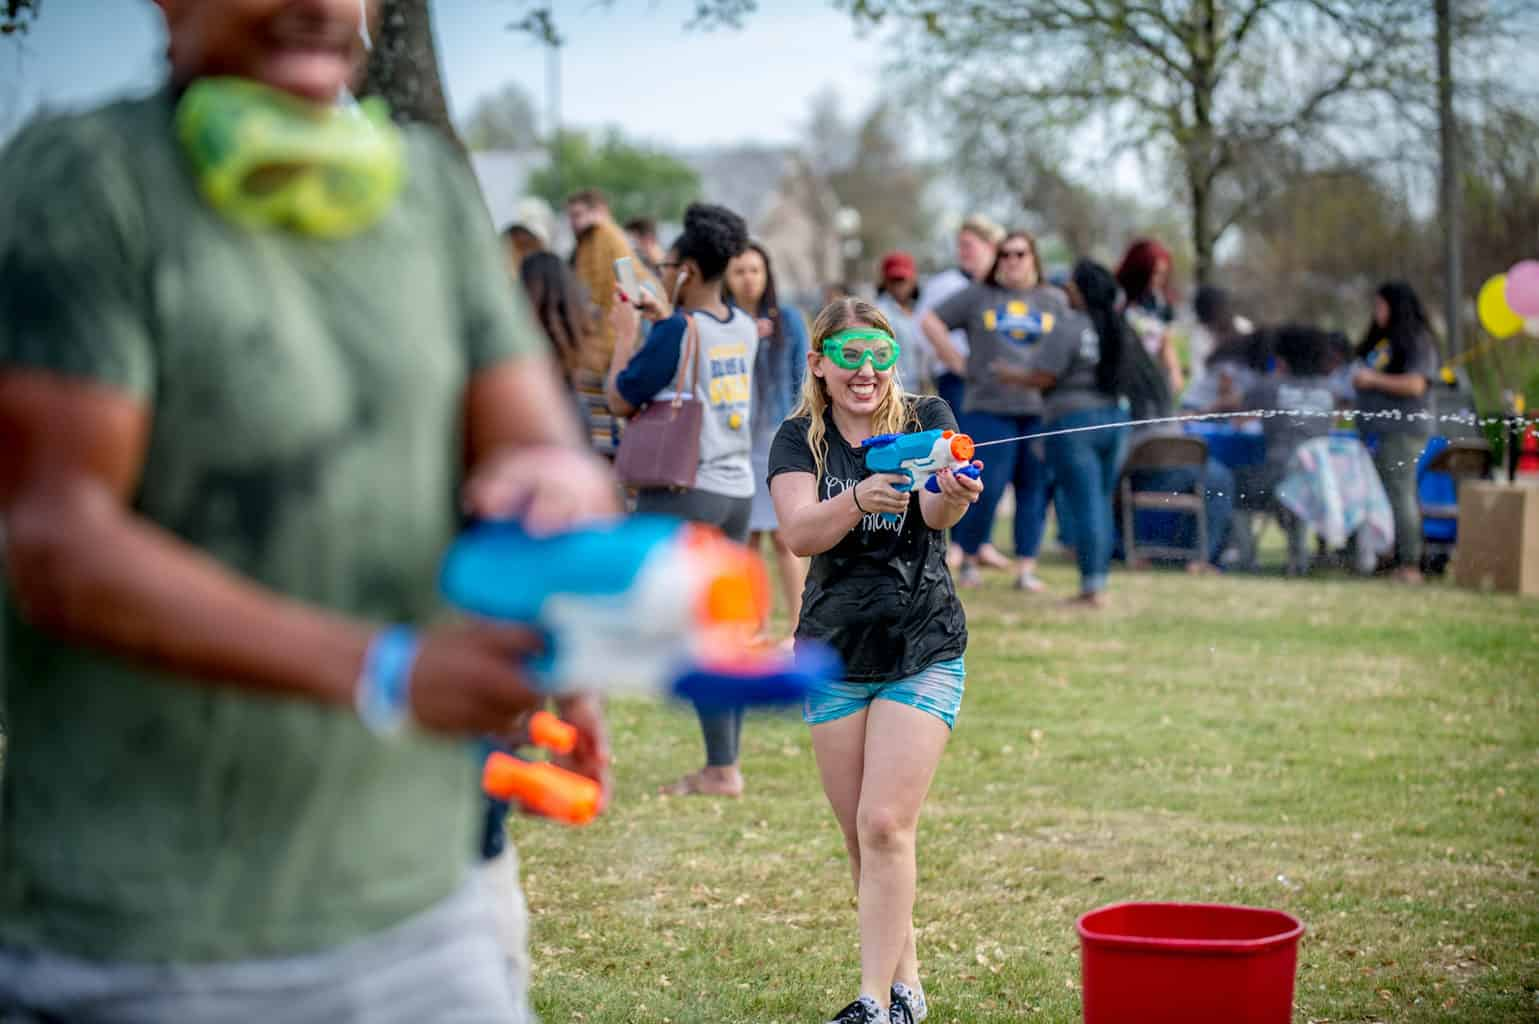 Female shooting water gun while wearing safety goggles.